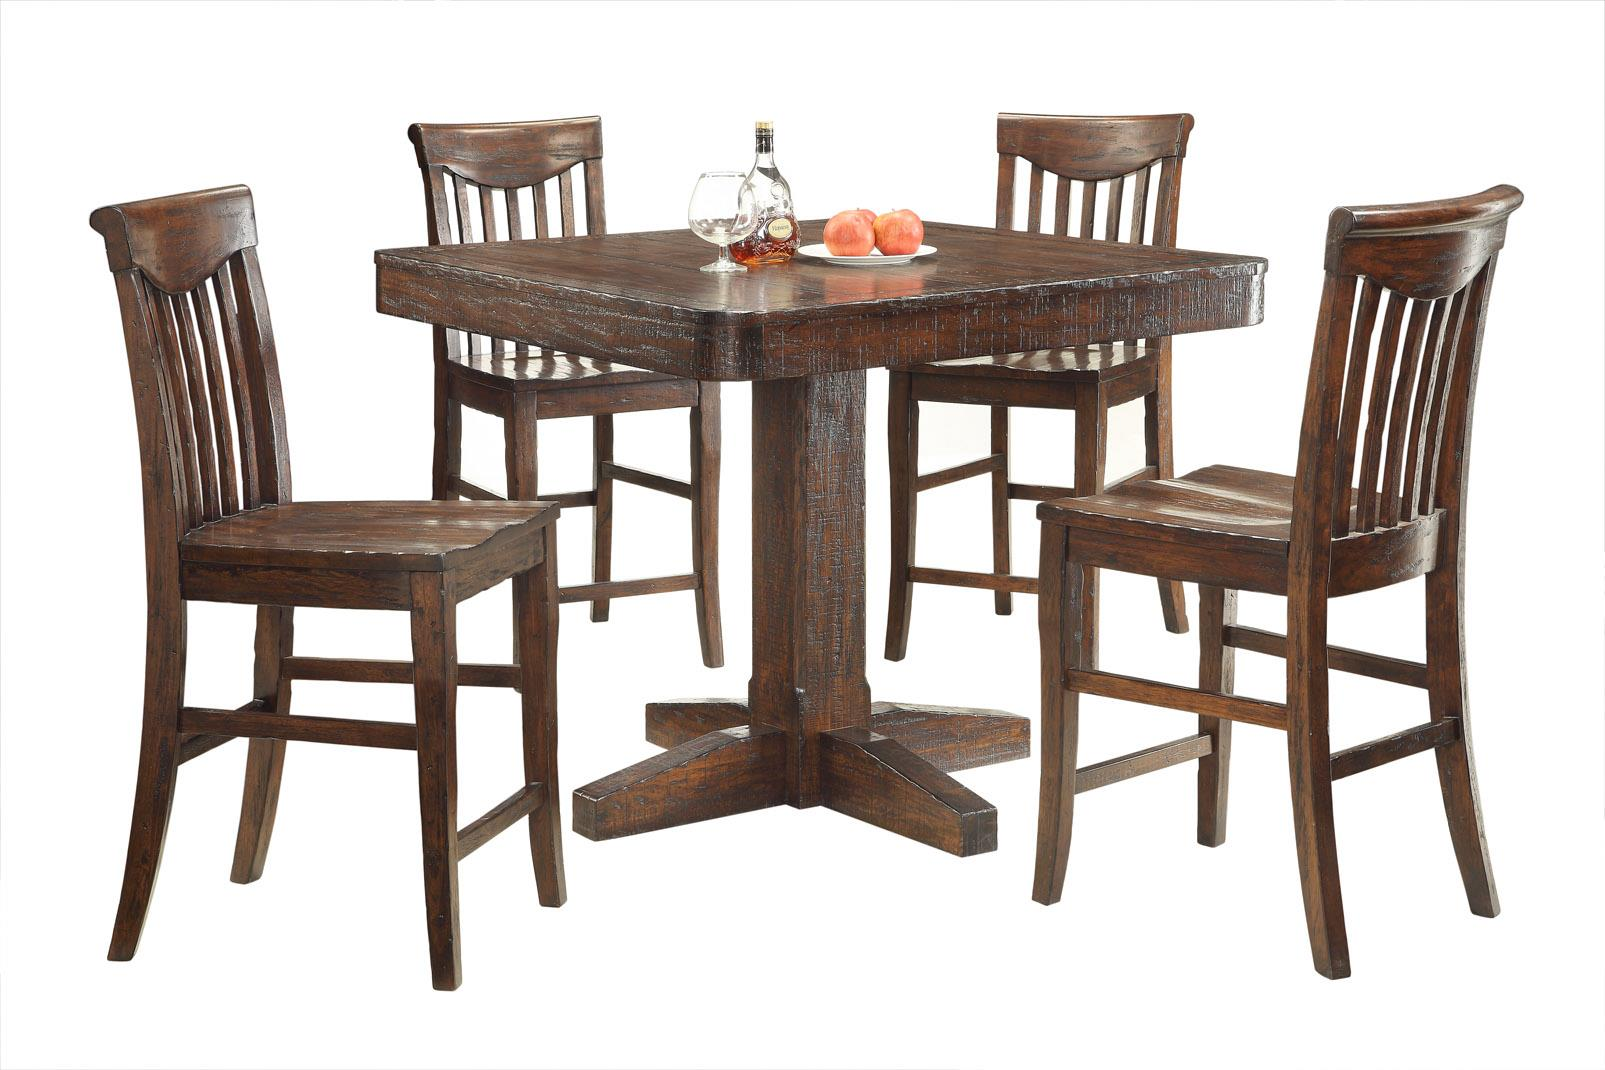 E.C.I. Furniture Gettysburg 5 Piece Counter Height Table and Stools - Item Number: 1475-05-PT44+4xCS